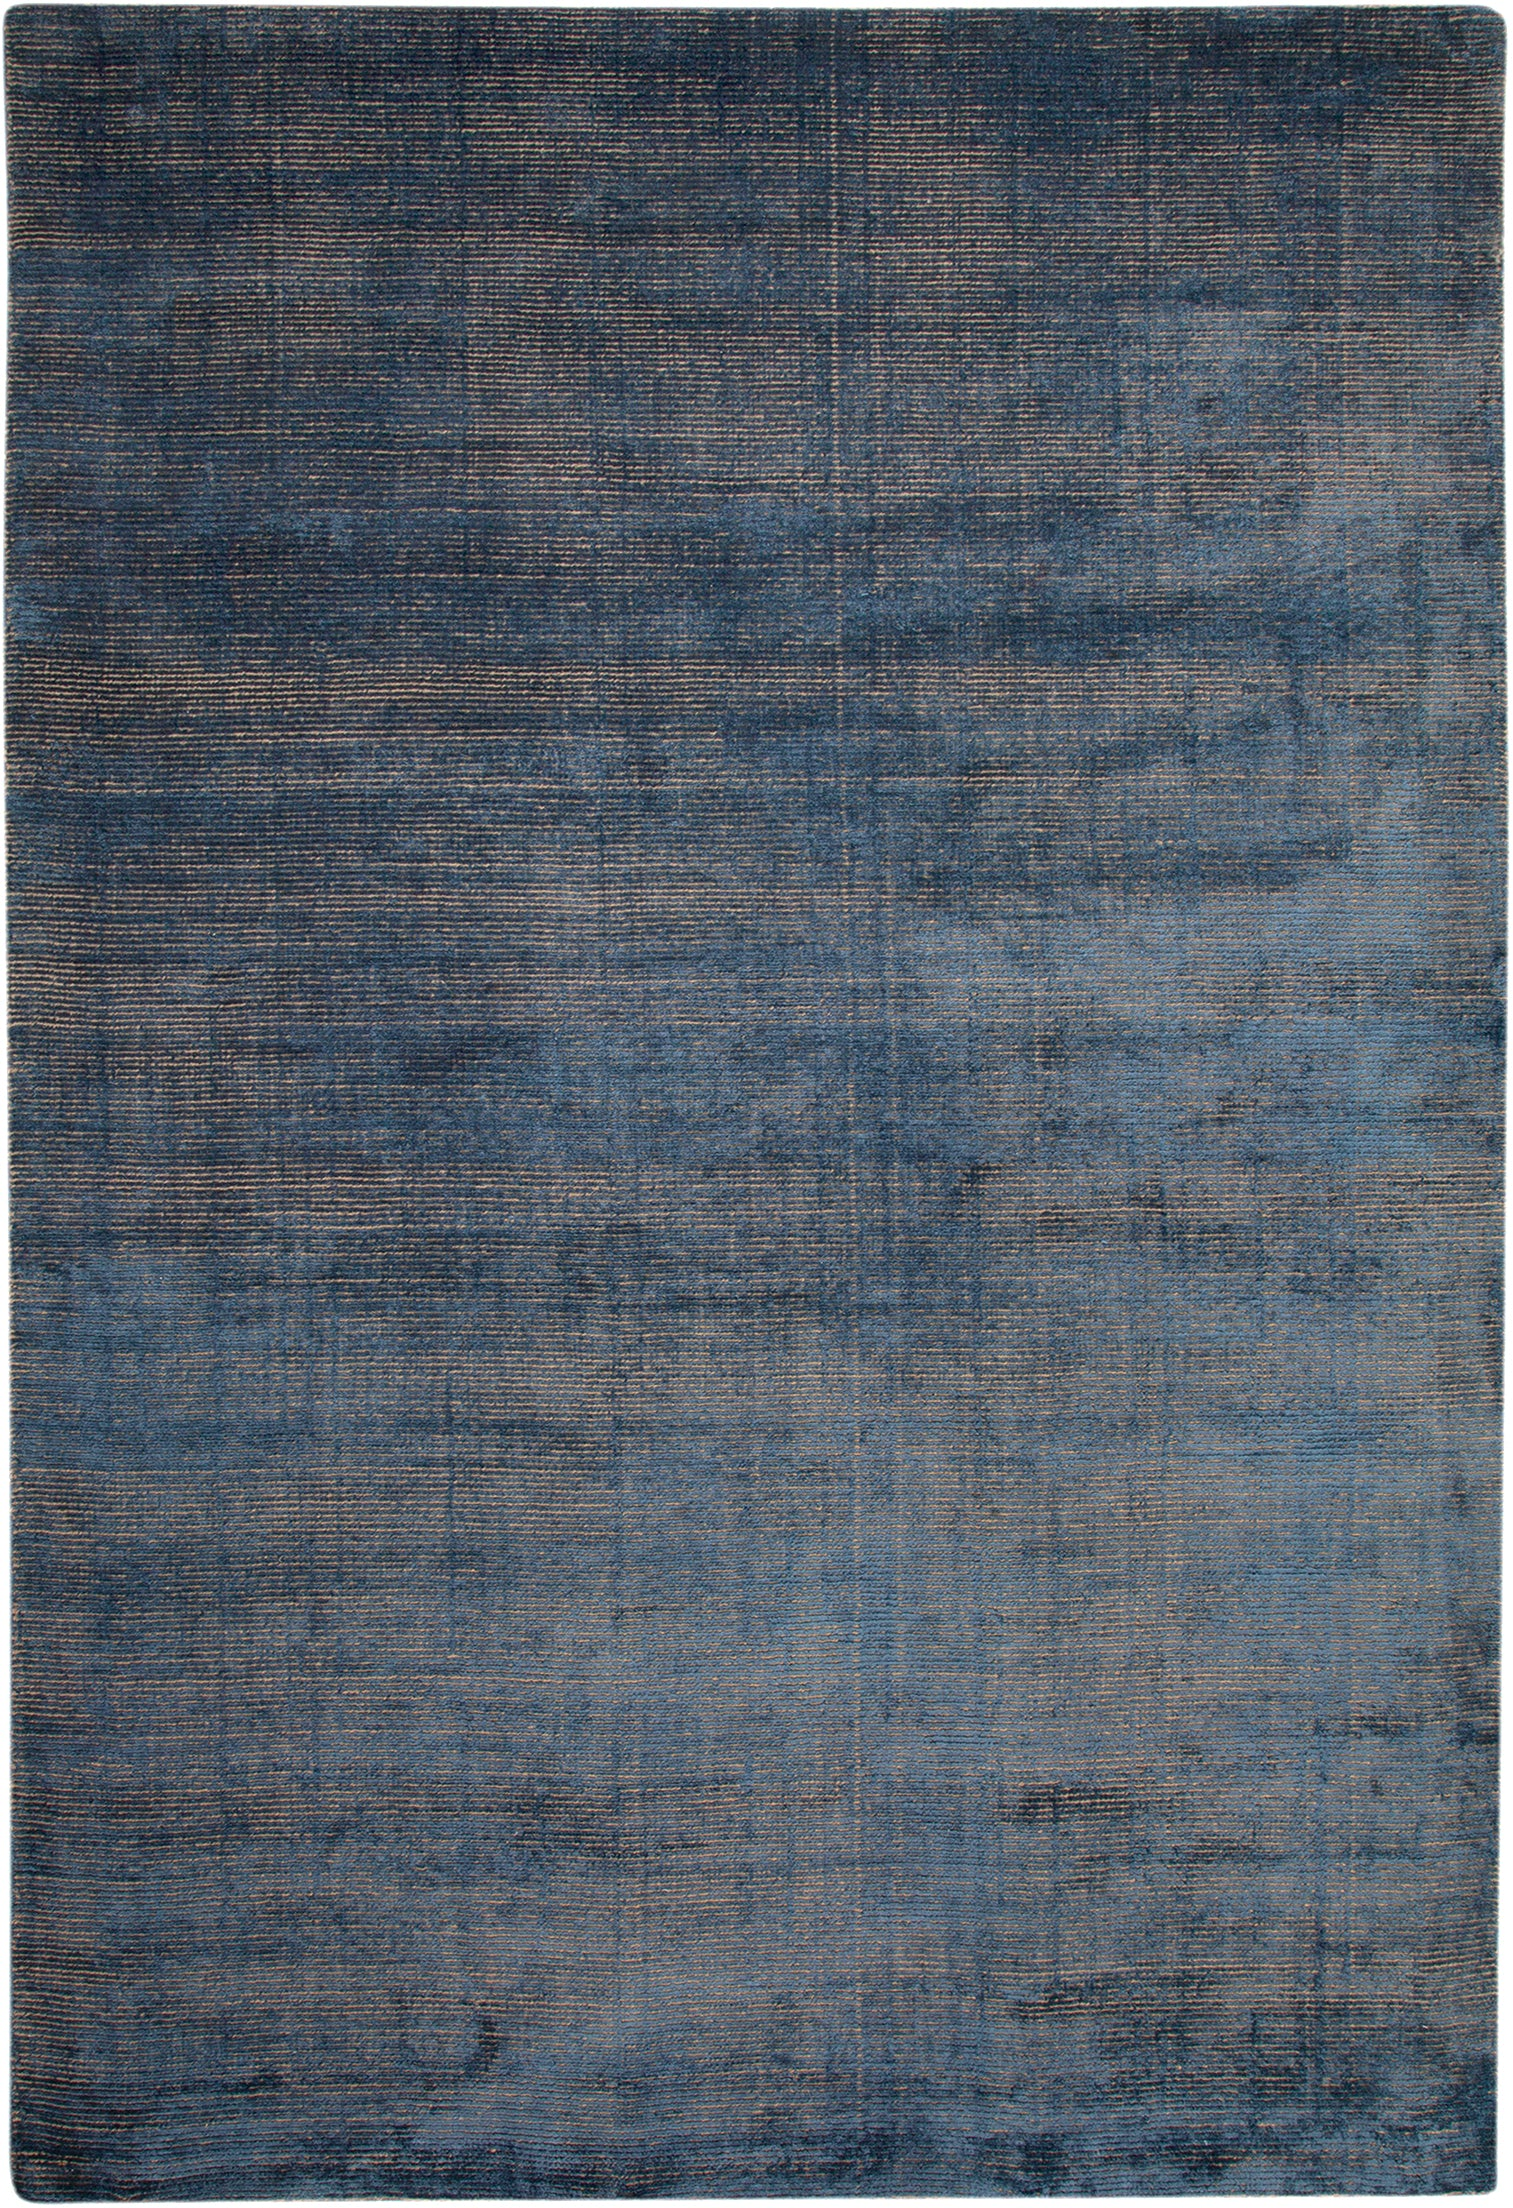 Faded Indigo Blue Wool Area Rug